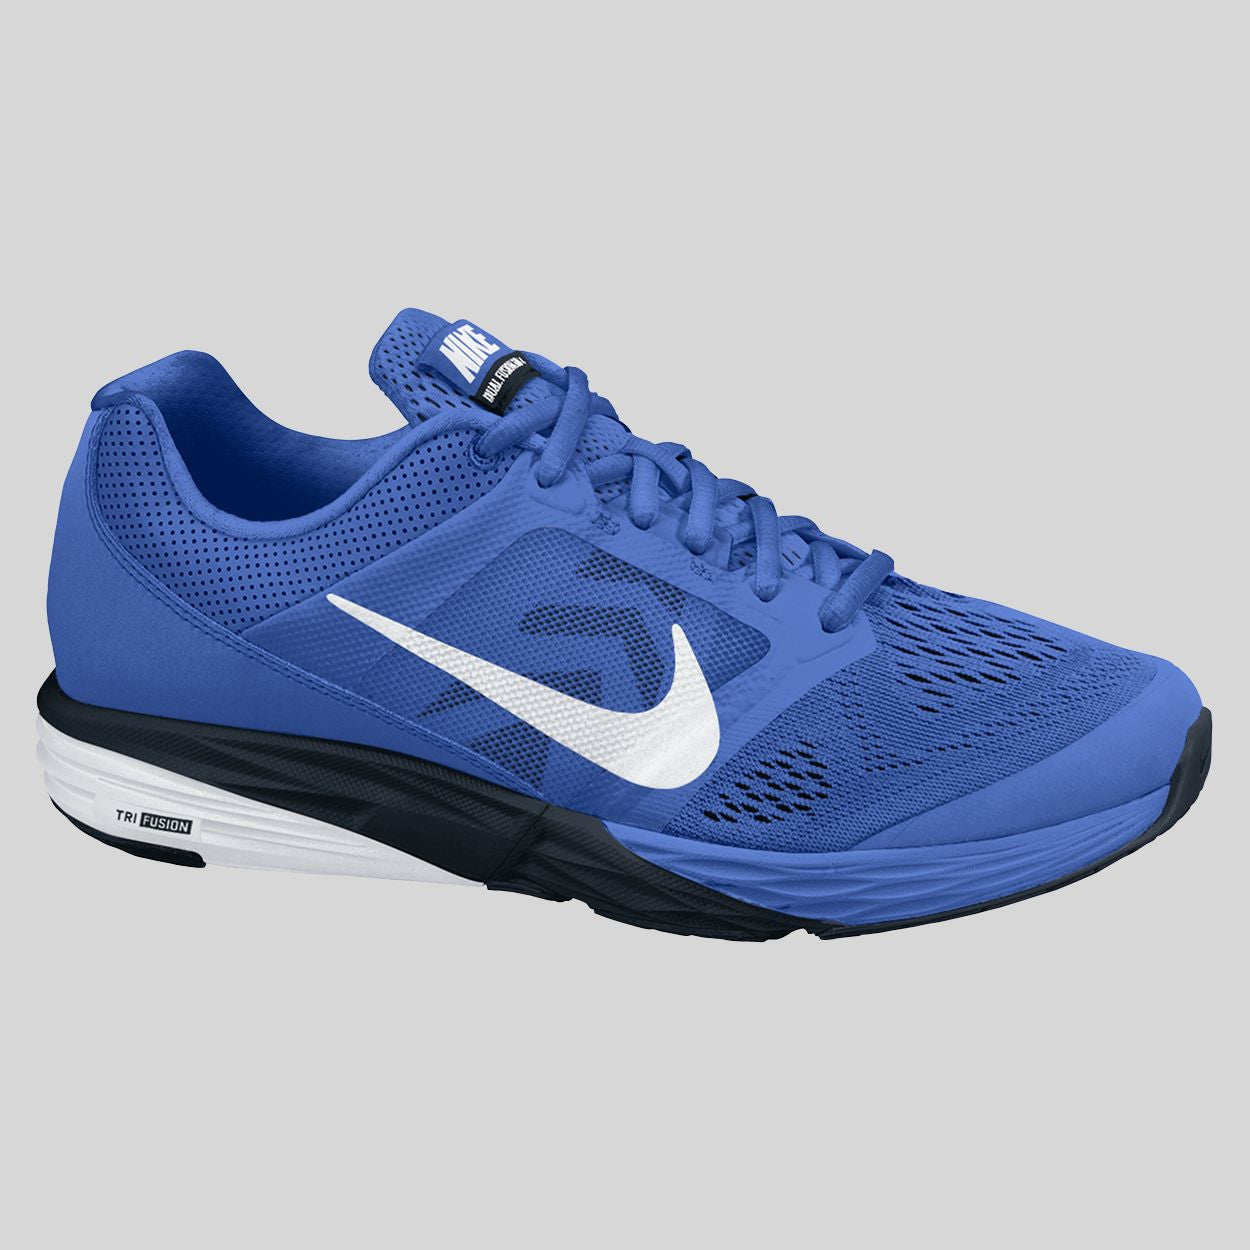 classic fit ae4c8 f141f ... usa nike tri fusion run msl game royal white black 749171 401 c8778  a086c